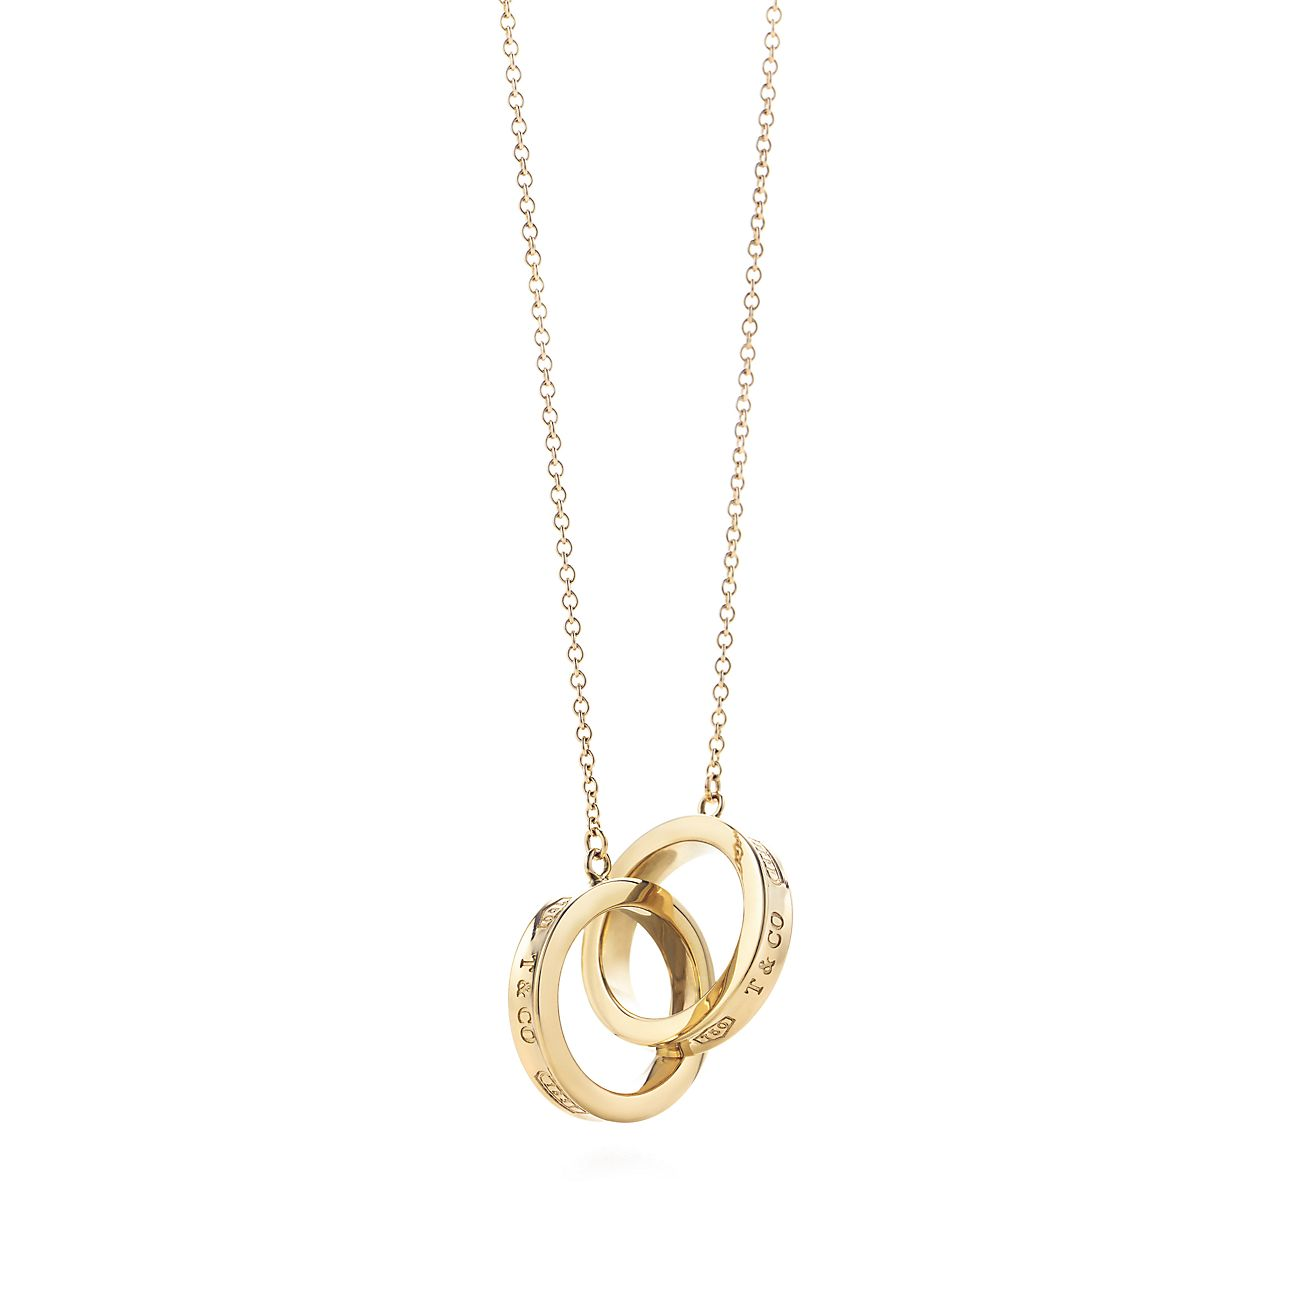 Tiffany 1837 interlocking circles pendant in 18k gold, small Tiffany & Co.